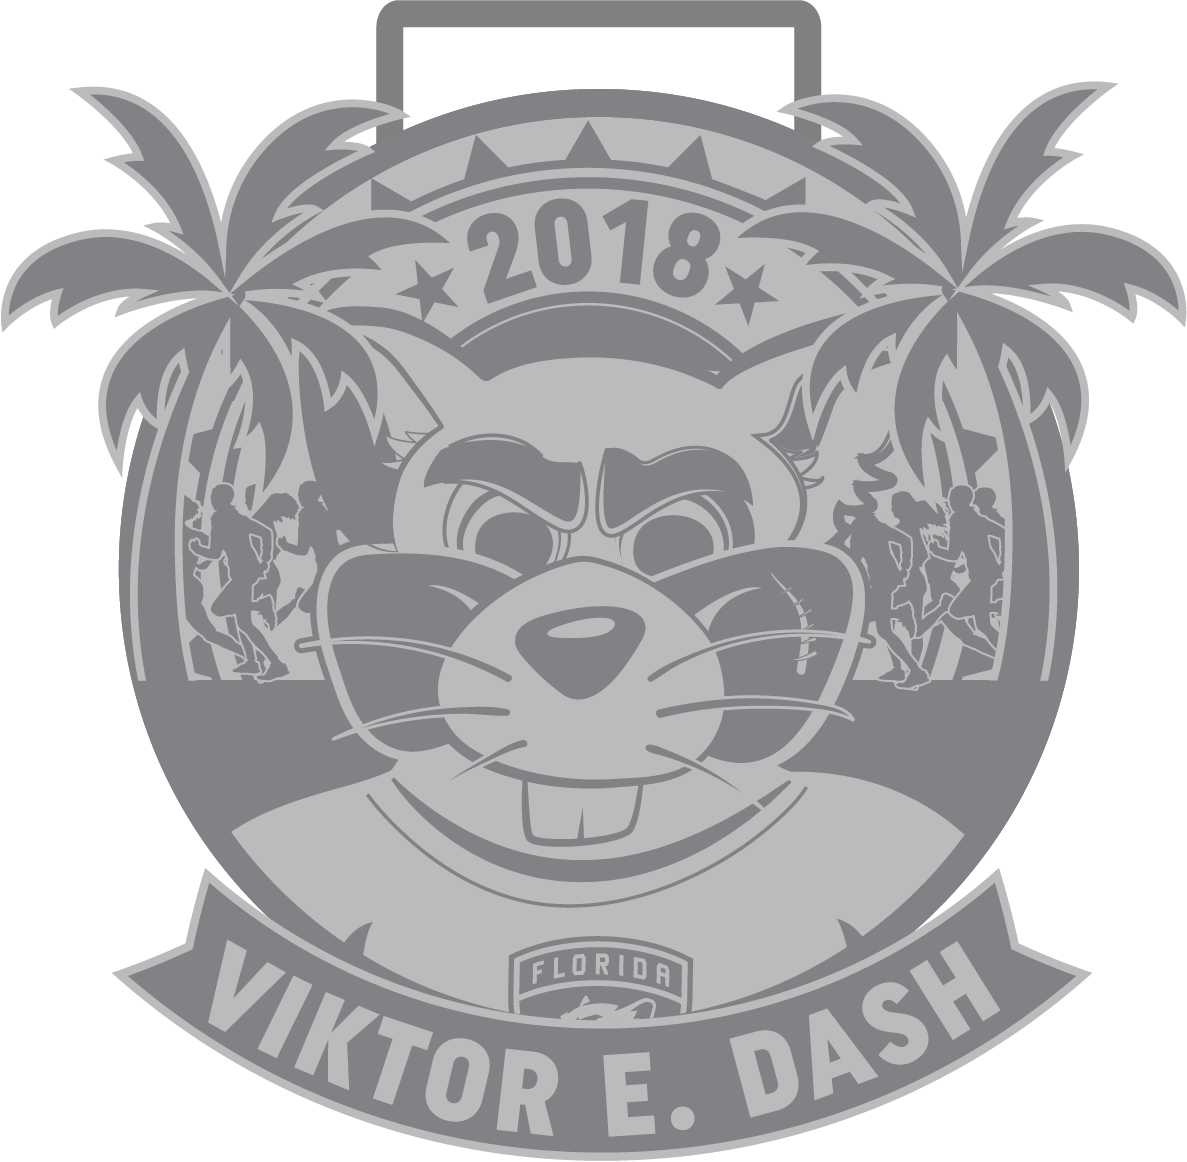 Viktor E Dash 5K – A Race to Fight Cancer